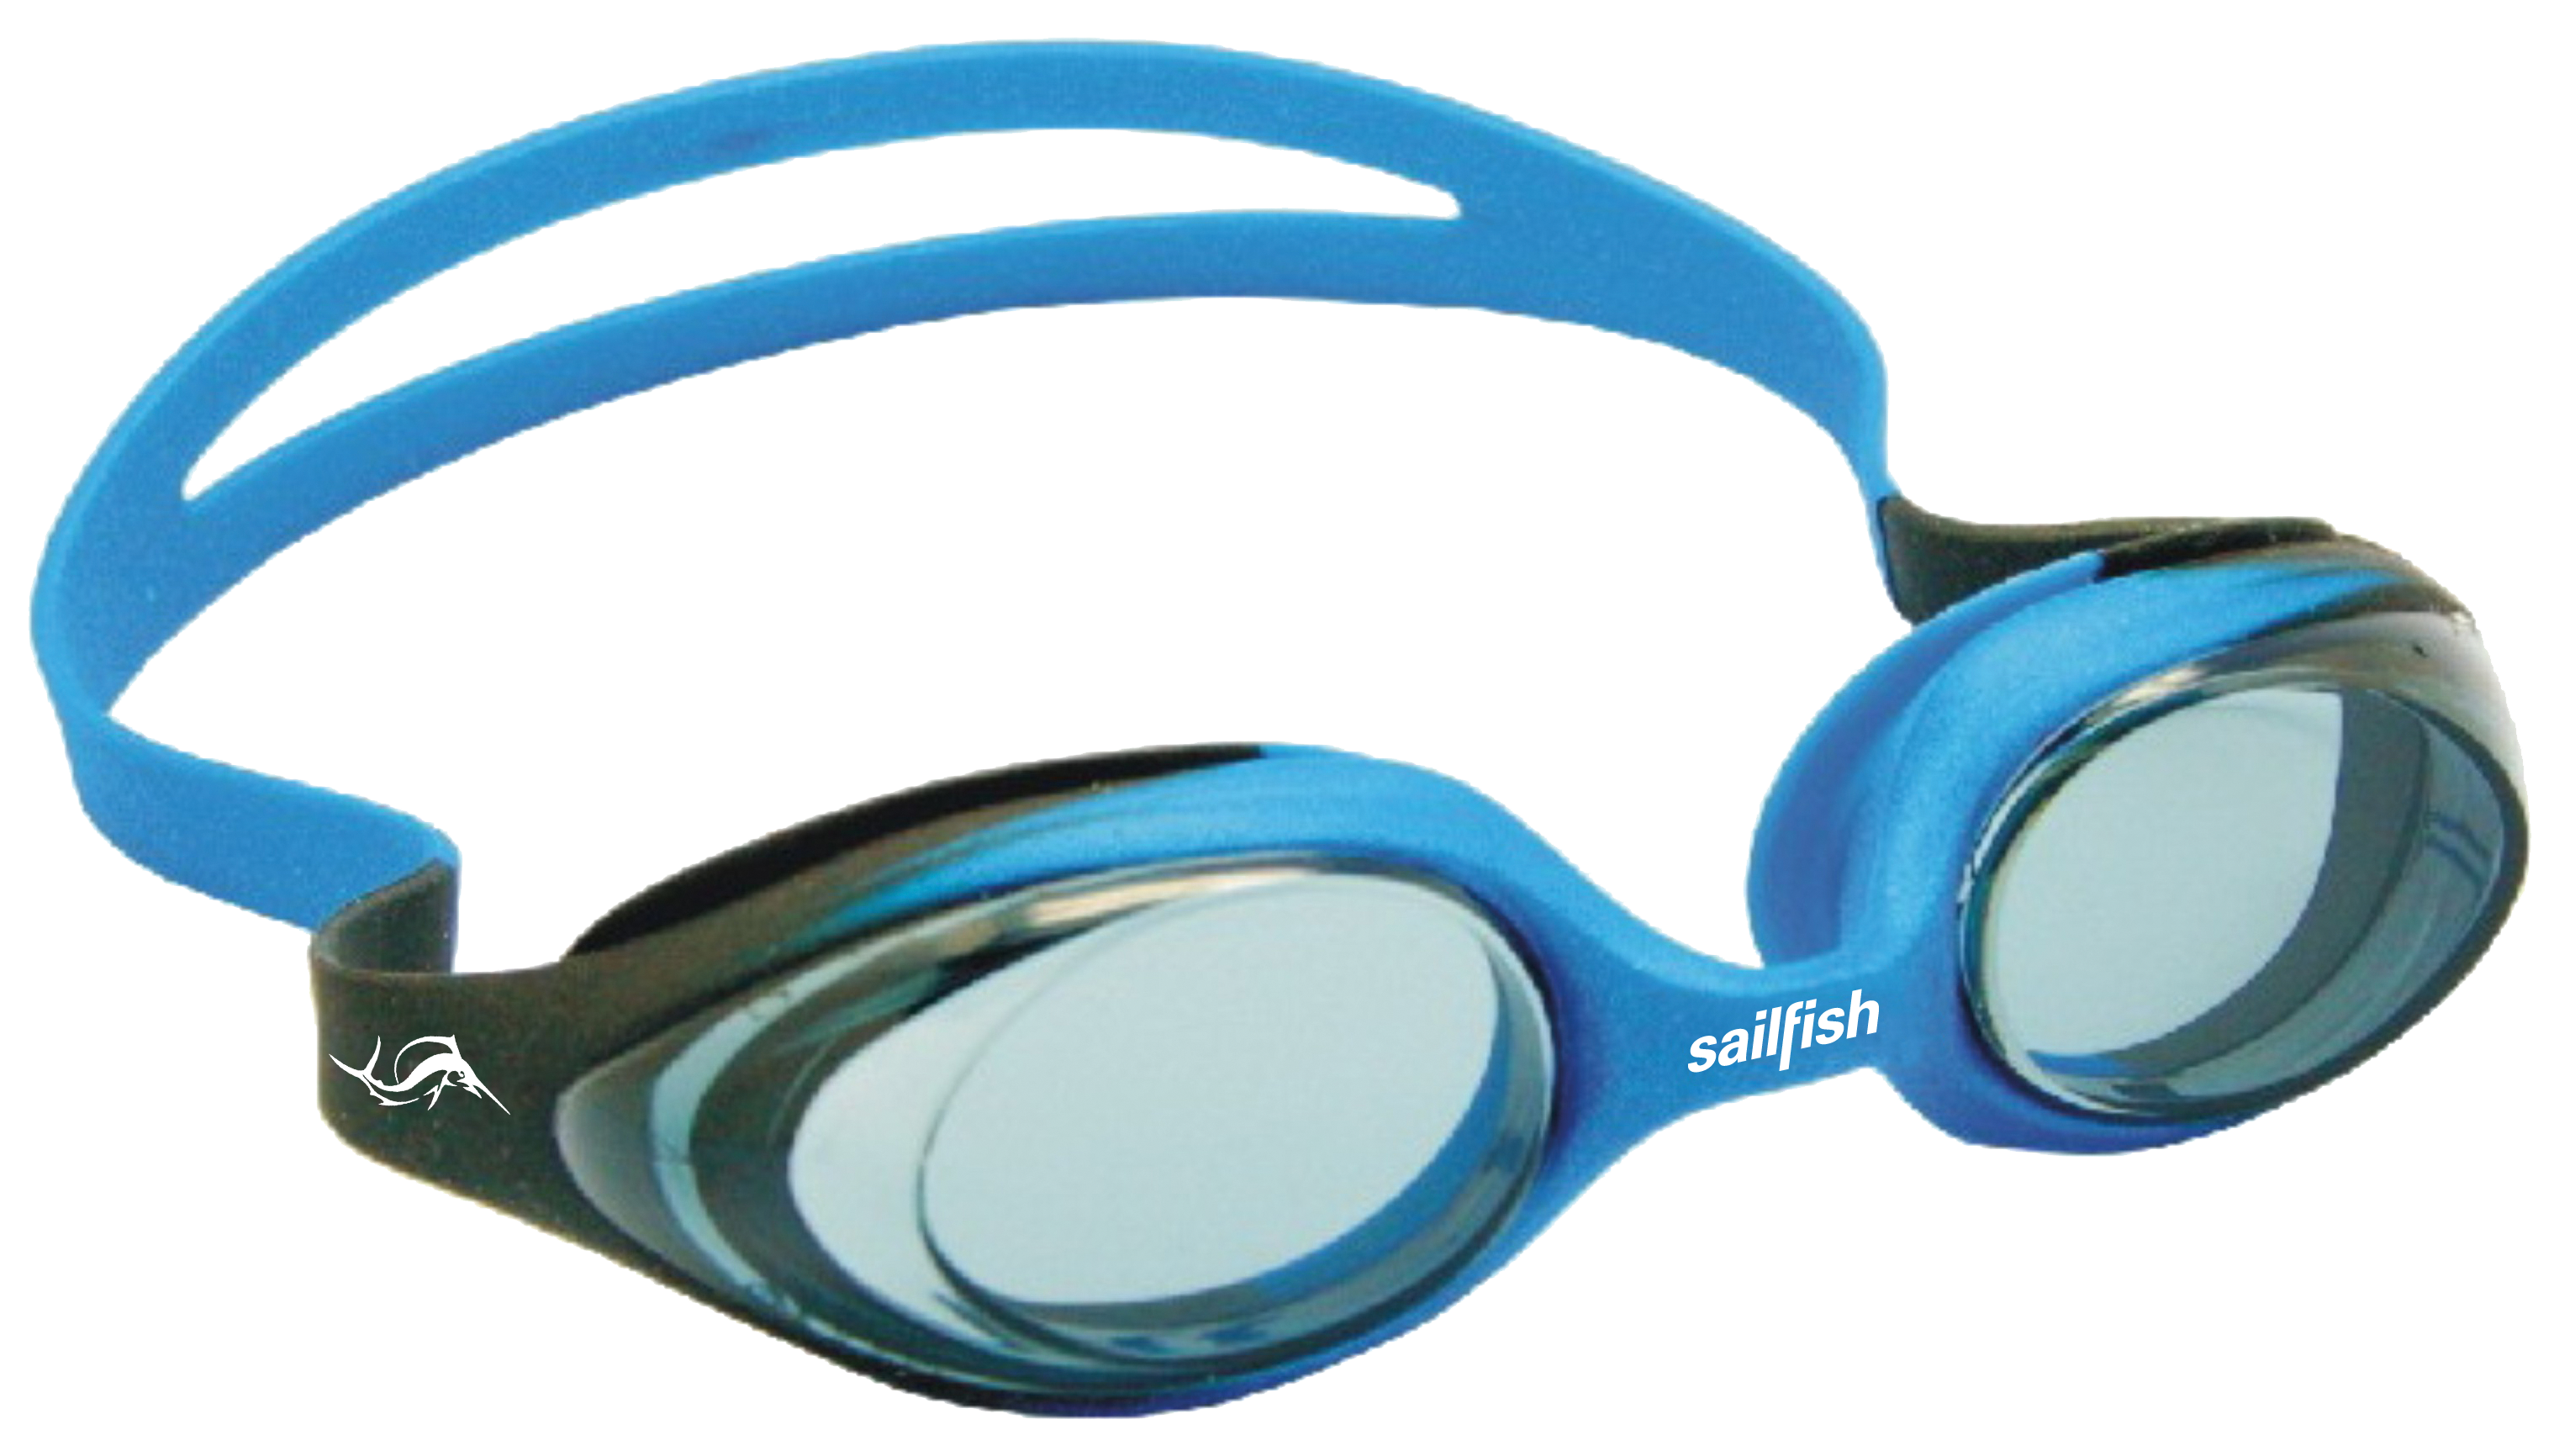 82e95867e7f Swim Goggle Hamburg | Swim Equipment | Accessories | Products | sailfish